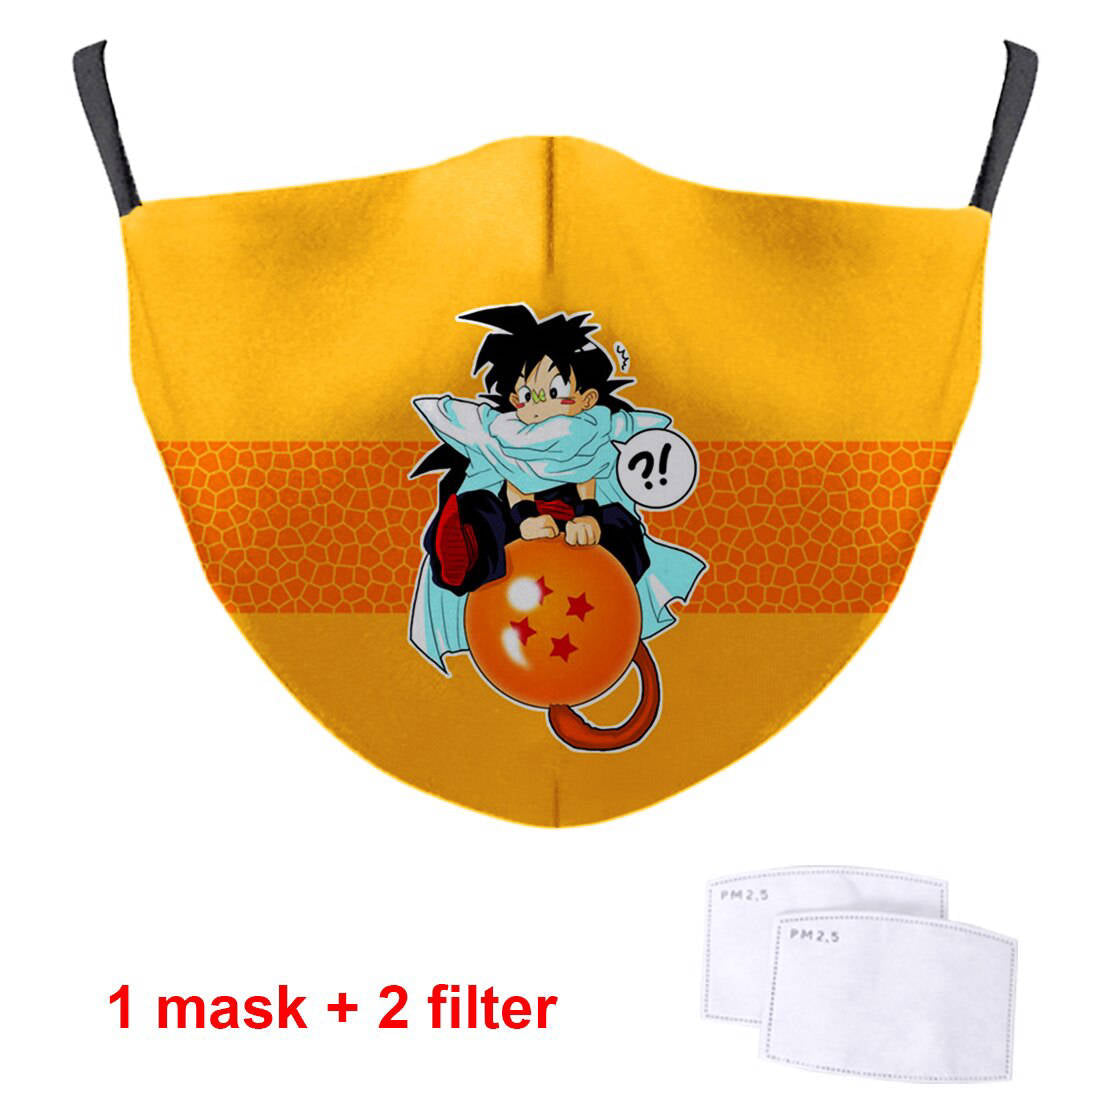 Anime Dragon Ball Cartoon 3D Masks Fashion Men Women Face Masks Breathable Streetwear Masks Anti Dust Masque With PM2.5 Filter